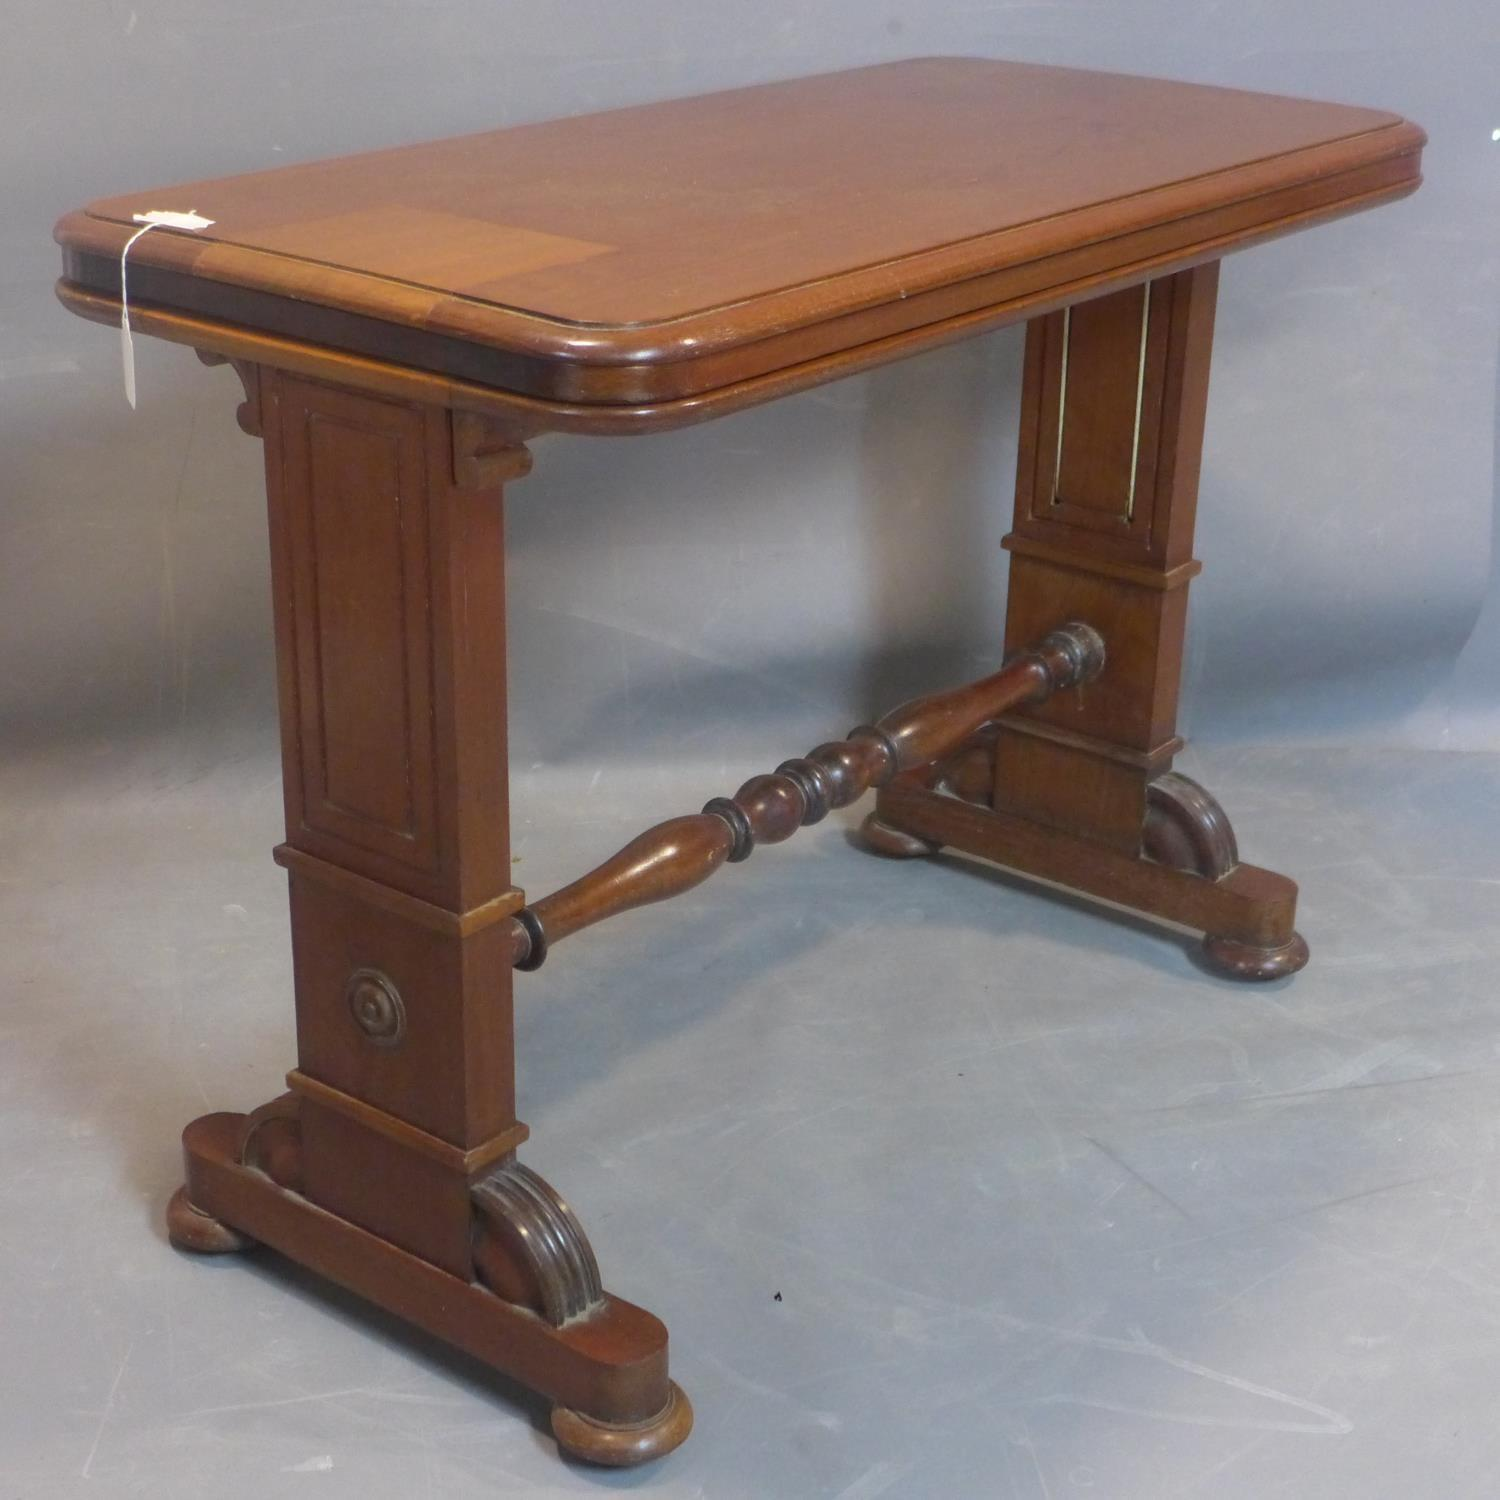 A 19th century mahogany three tier metamorphic buffet, on carved supports joined by turned